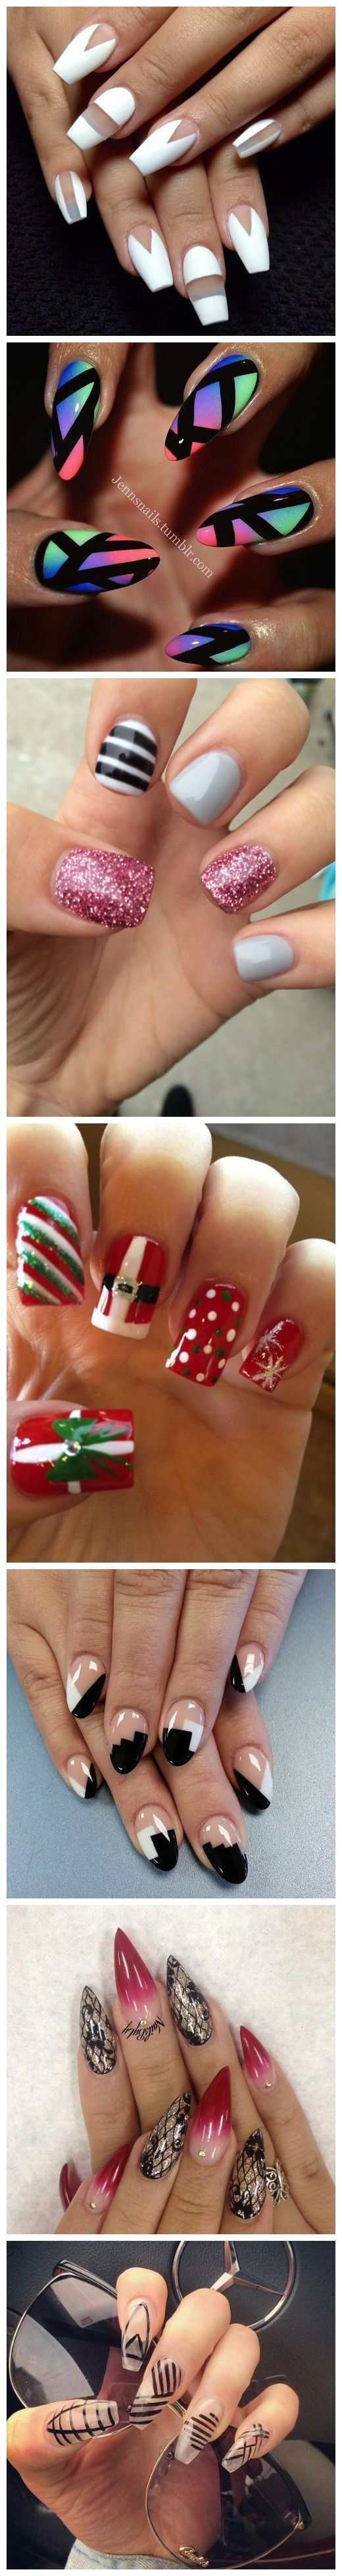 Lovely nail art ideas you must try - Nail 300 | Easy and Fashion